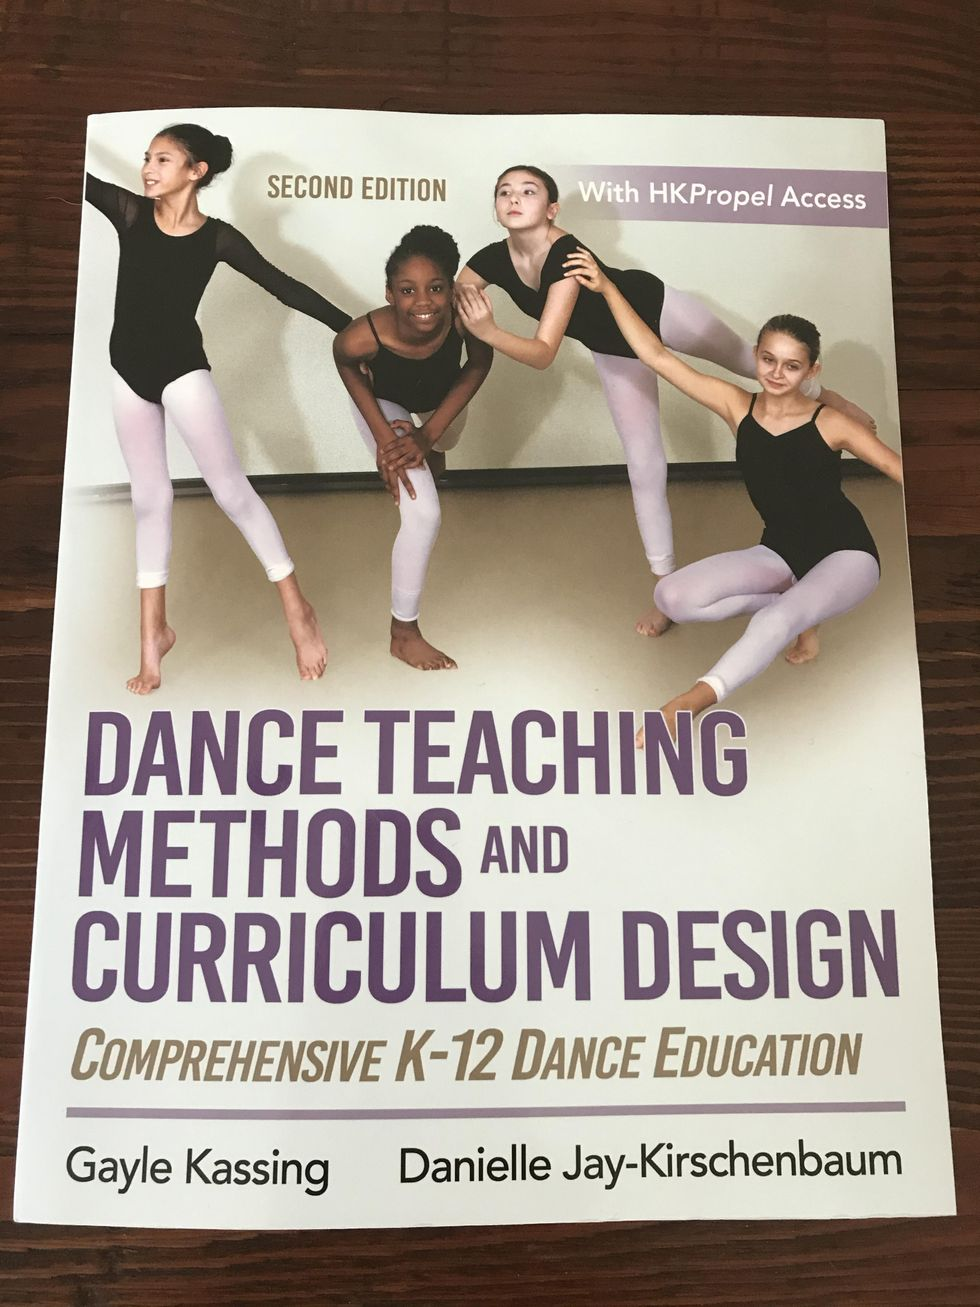 Dance Teaching Methods and Curriculum Design lays flat on a wooden table. It is a large book with large purple print, and an image of four middle school-aged girls in leotards and tights posing